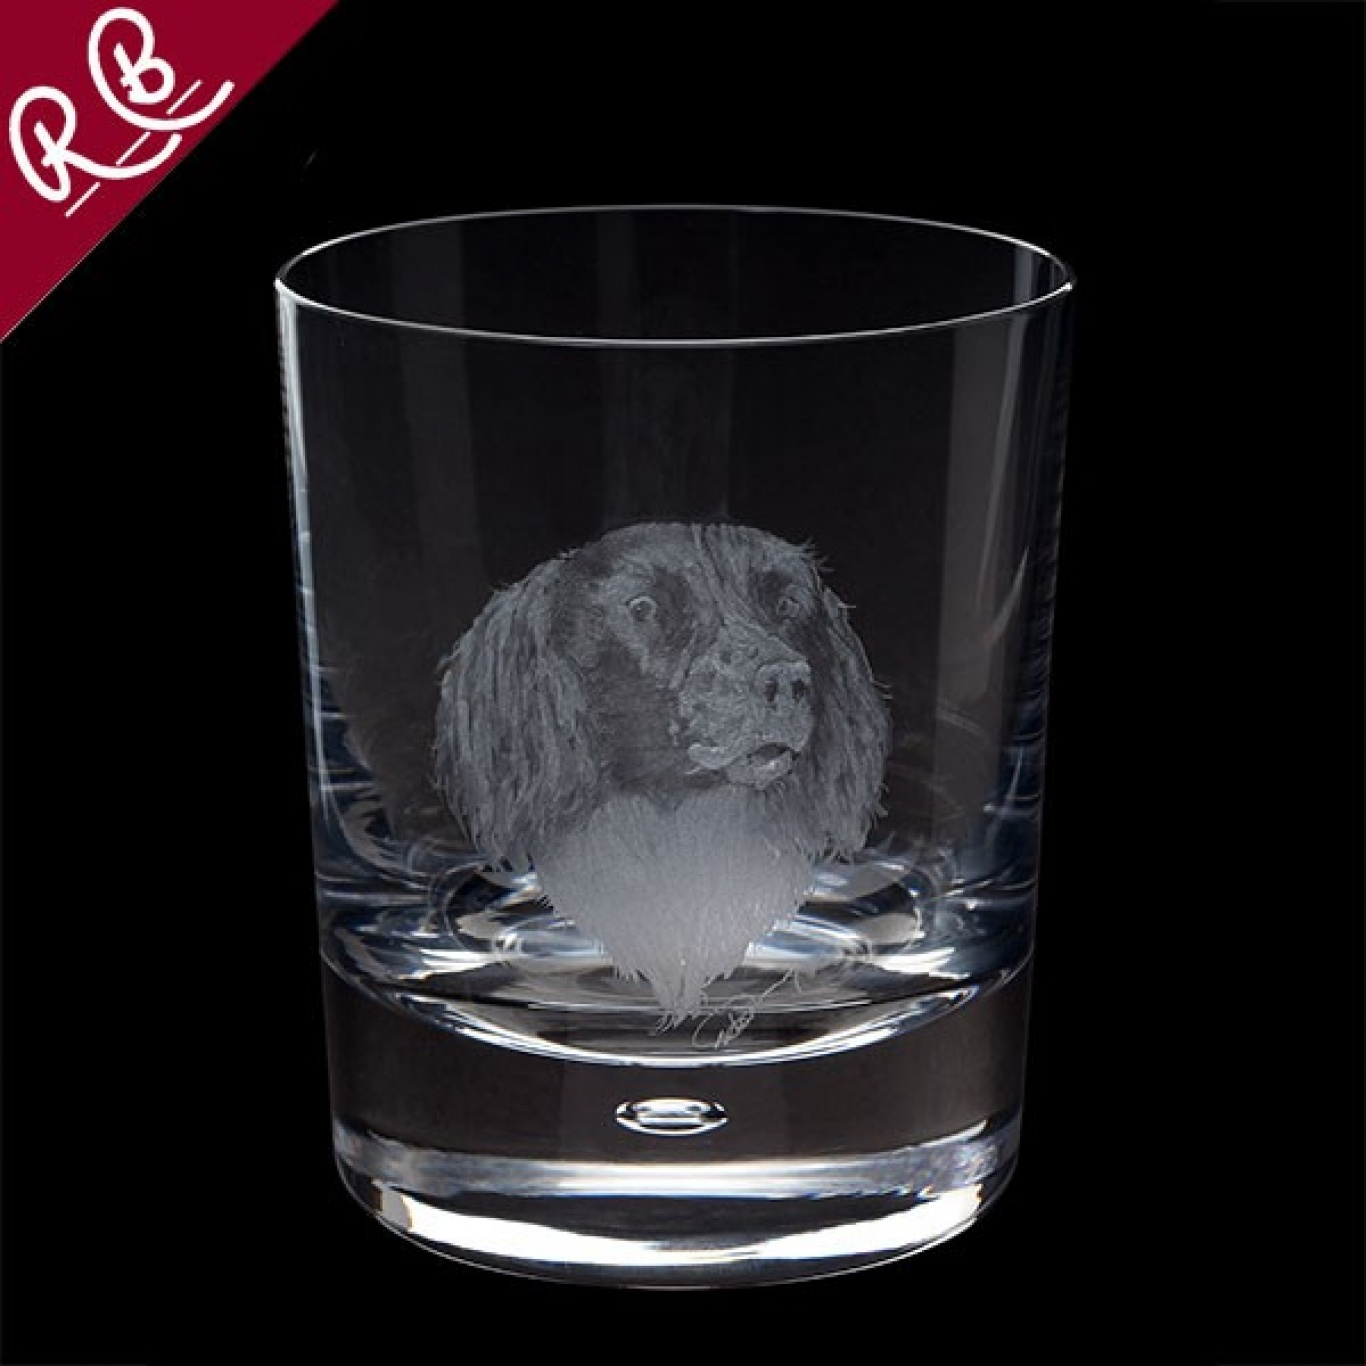 Image of Royal Brierley Engraved Springer Spaniel Tumbler